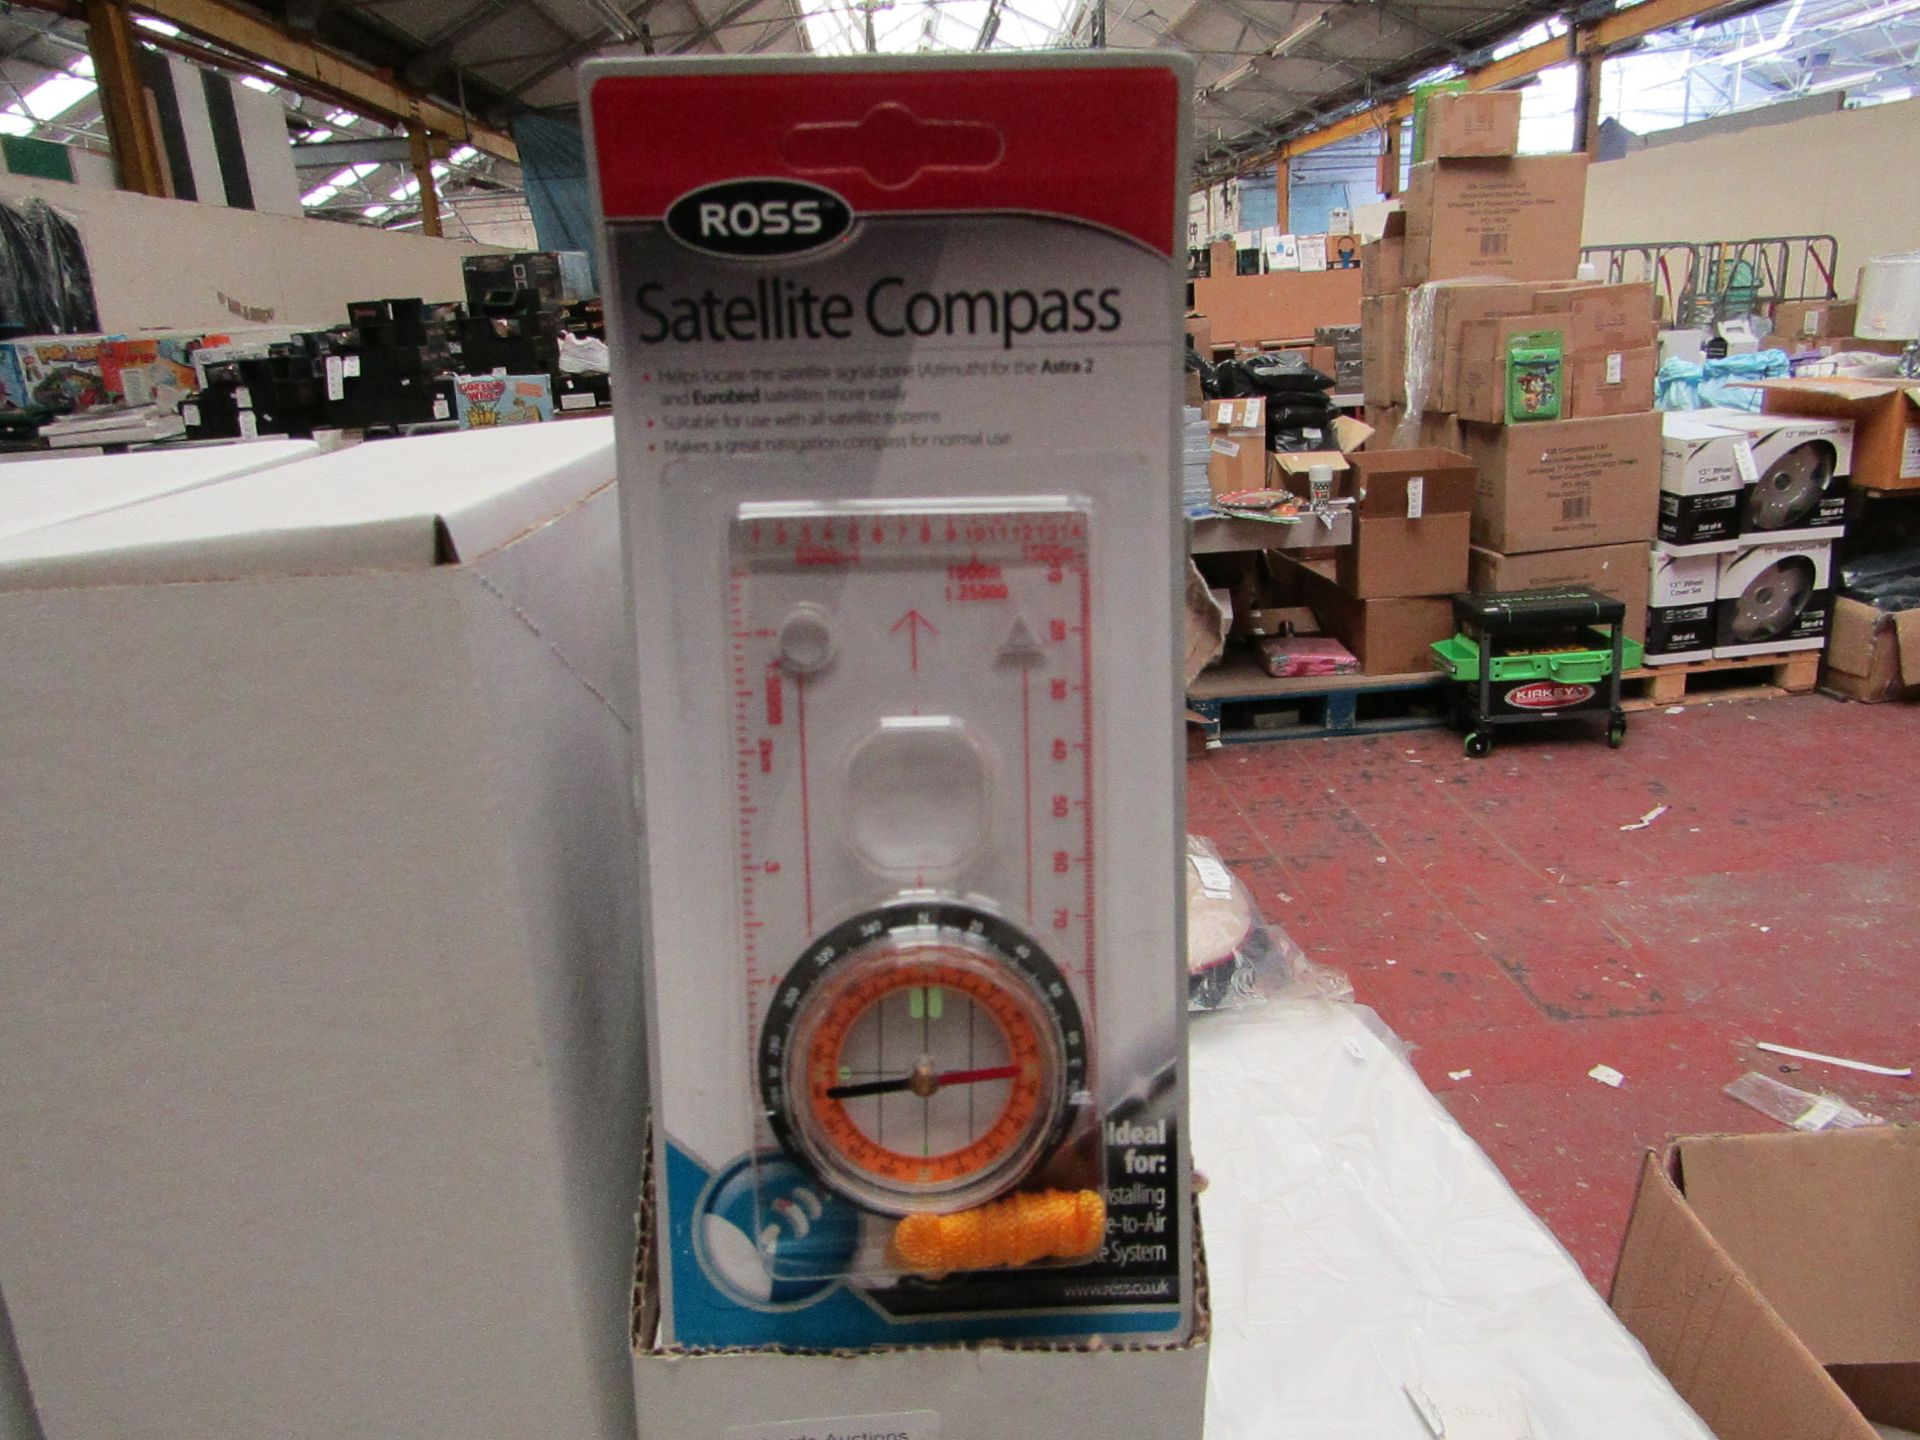 Lot 178 - Box of 10 Ross Satellite Compass'. Unused & Boxed